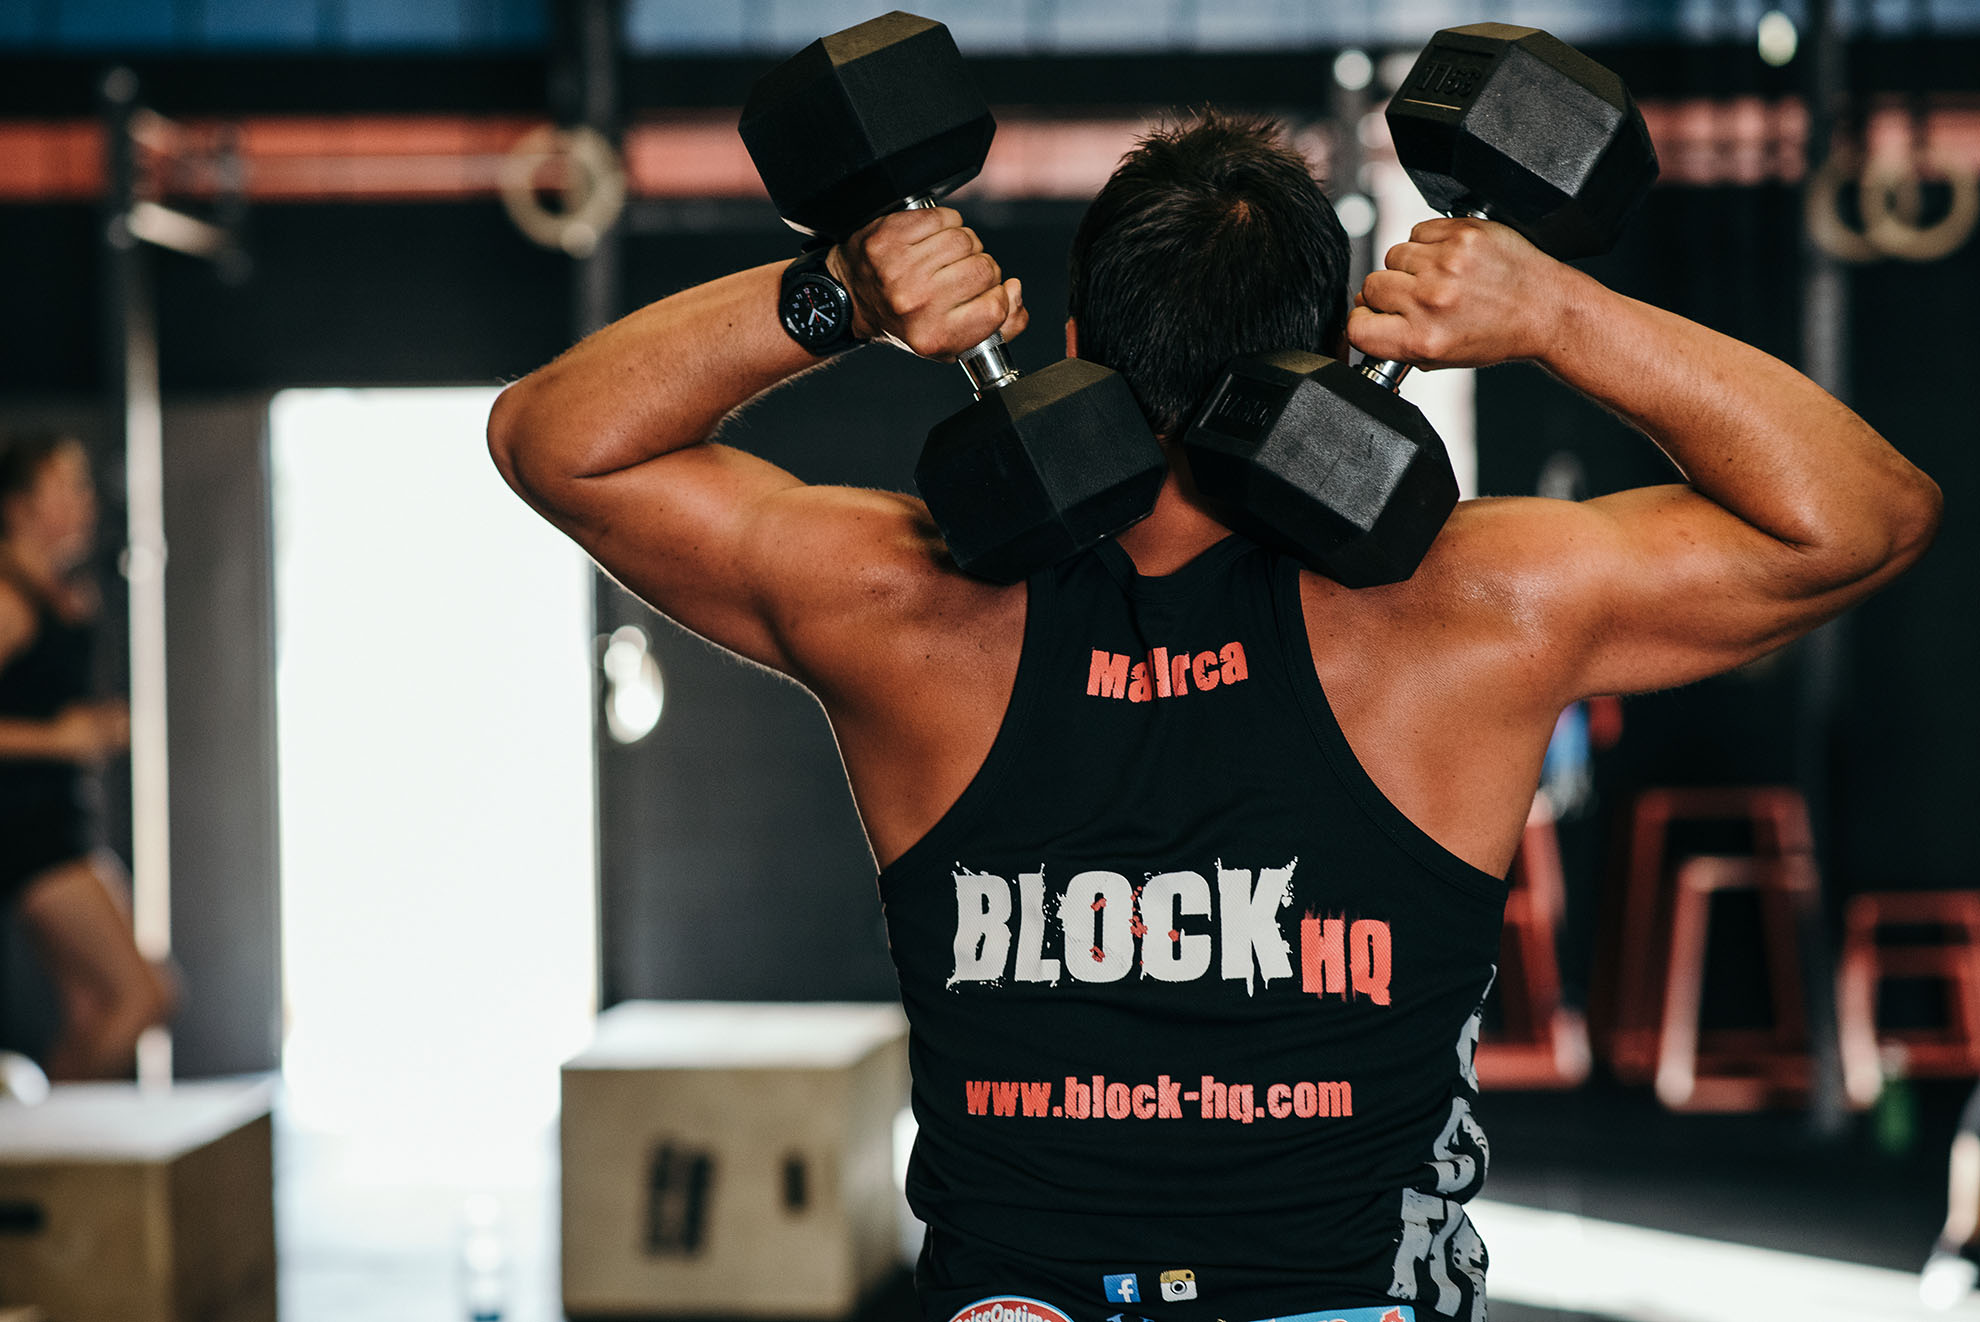 Block HQ Mallorca Strength Conditioning Cross Training HIIT